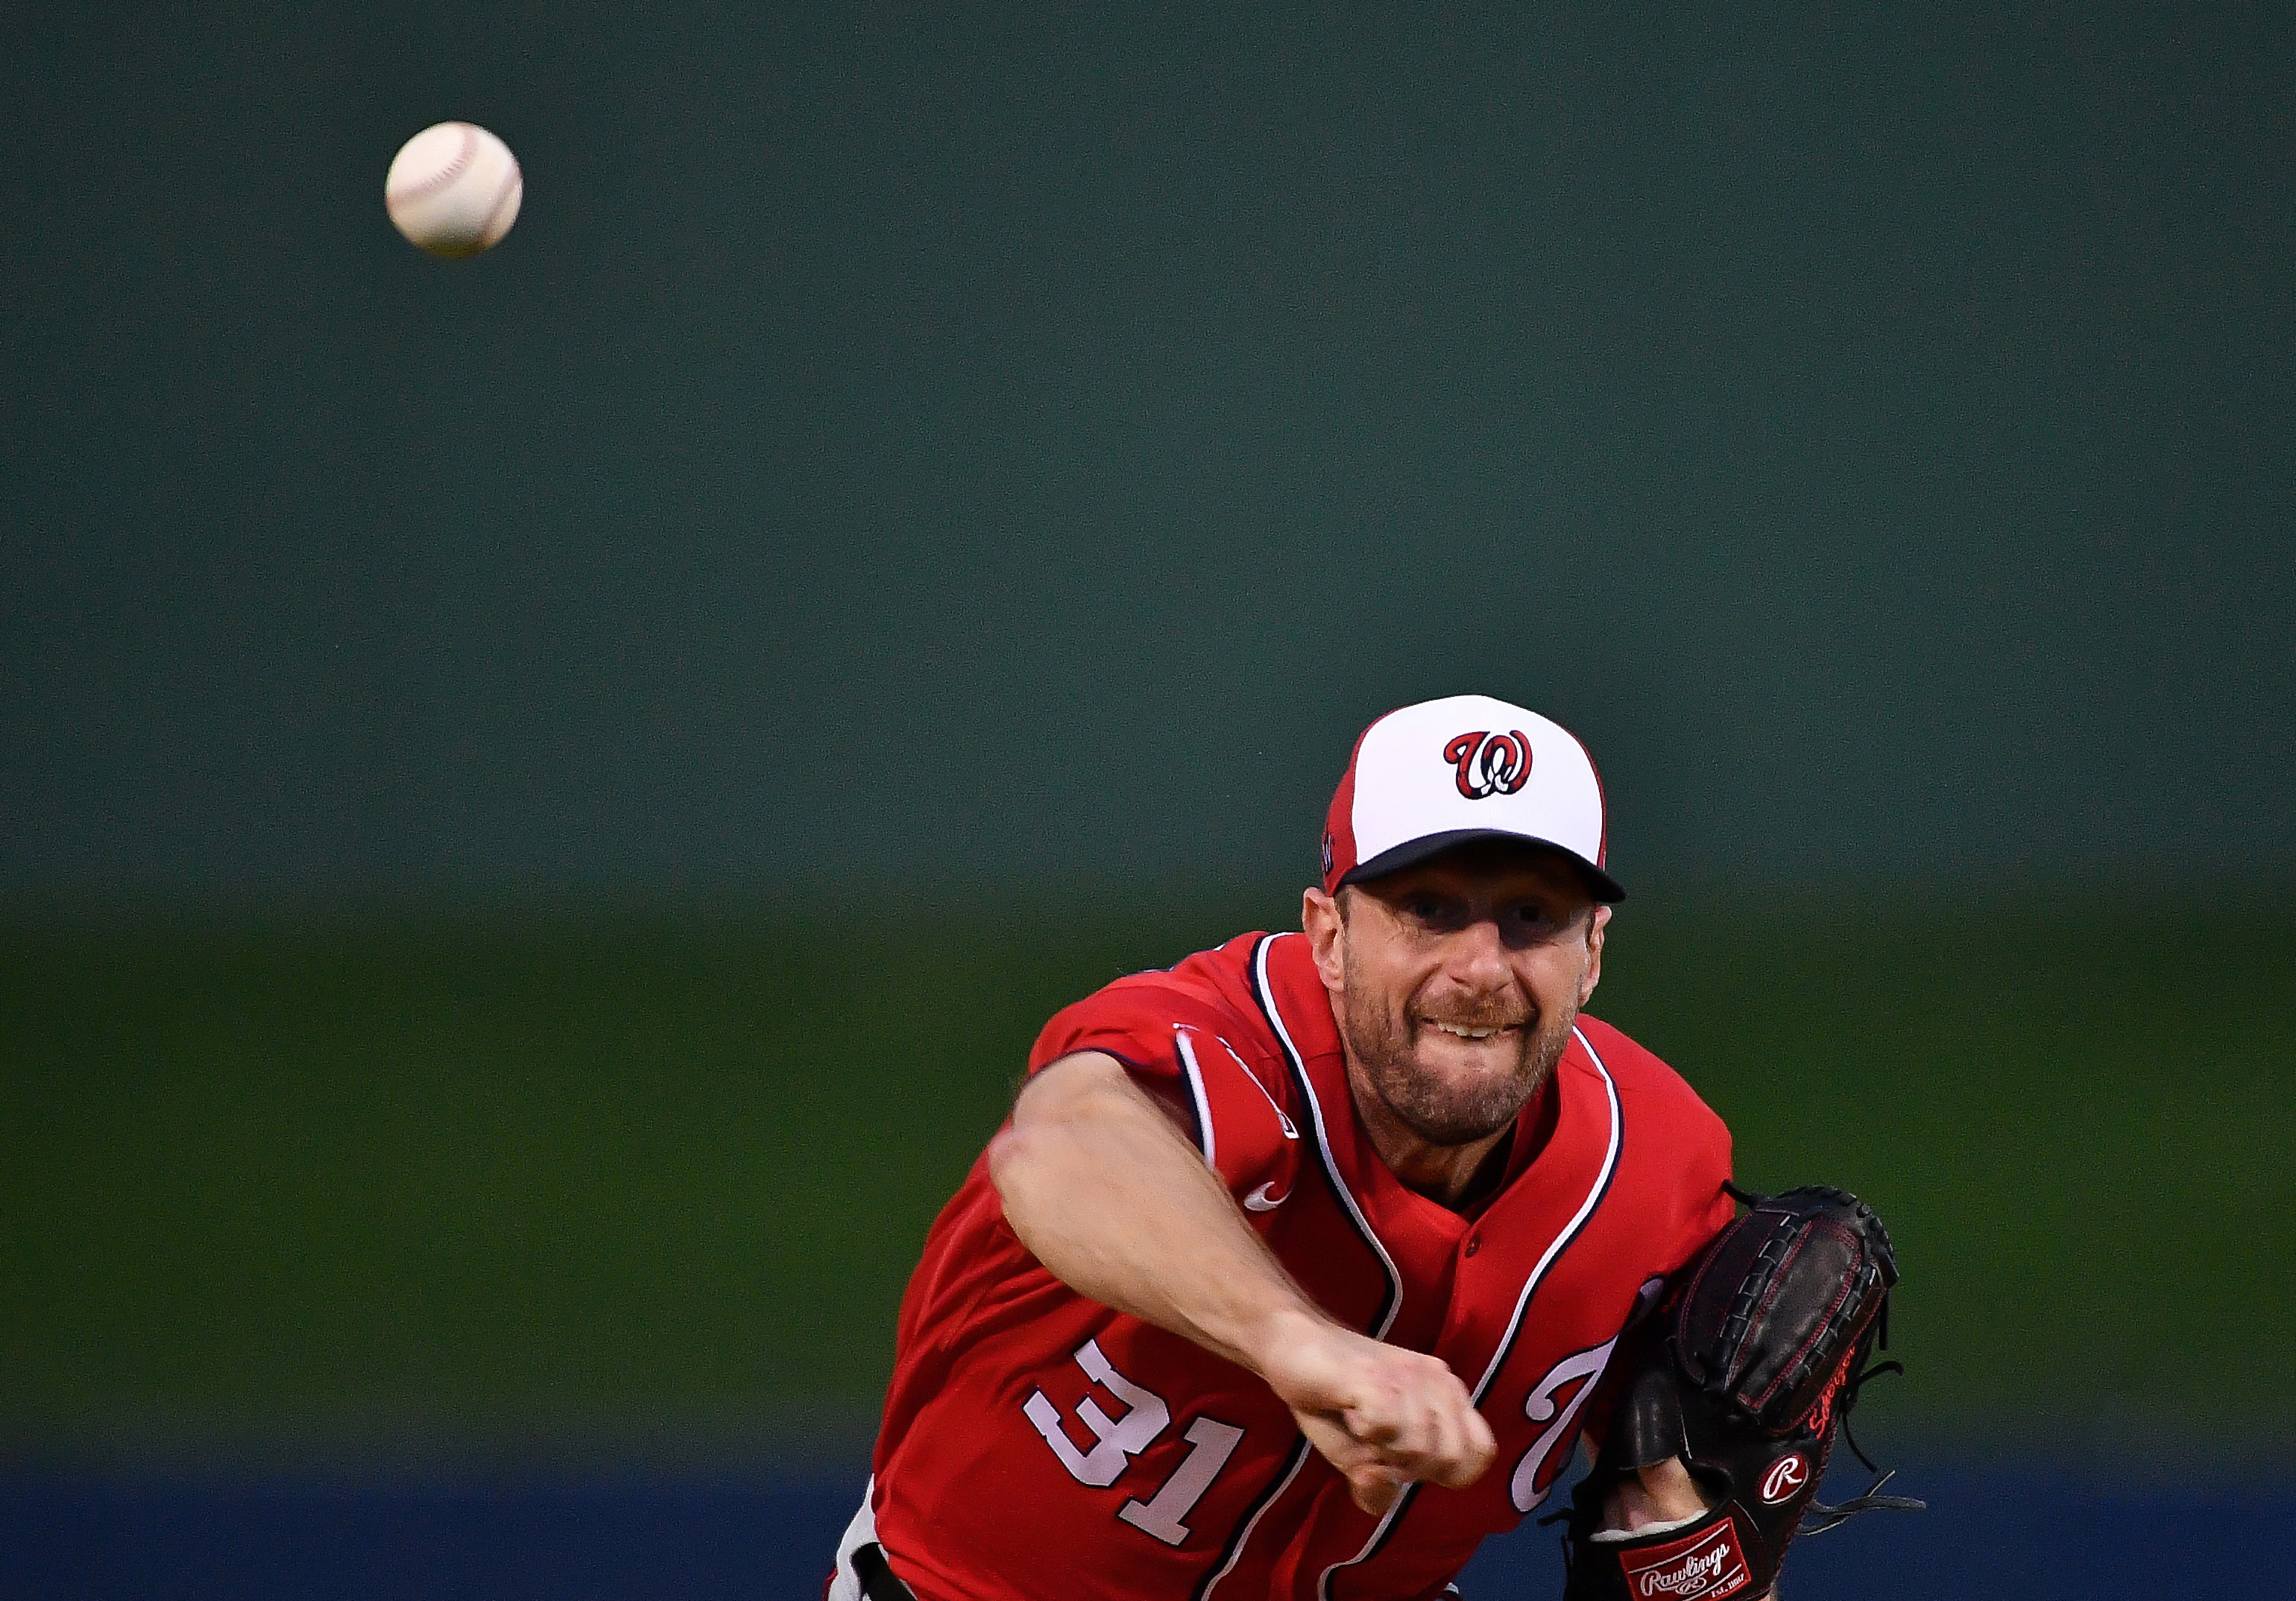 Max Scherzer #31 of the Washington Nationals delivers a pitch during the spring training game against the Houston Astros at FITTEAM Ballpark of the Palm Beaches on February 22, 2020 in West Palm Beach, Florida.